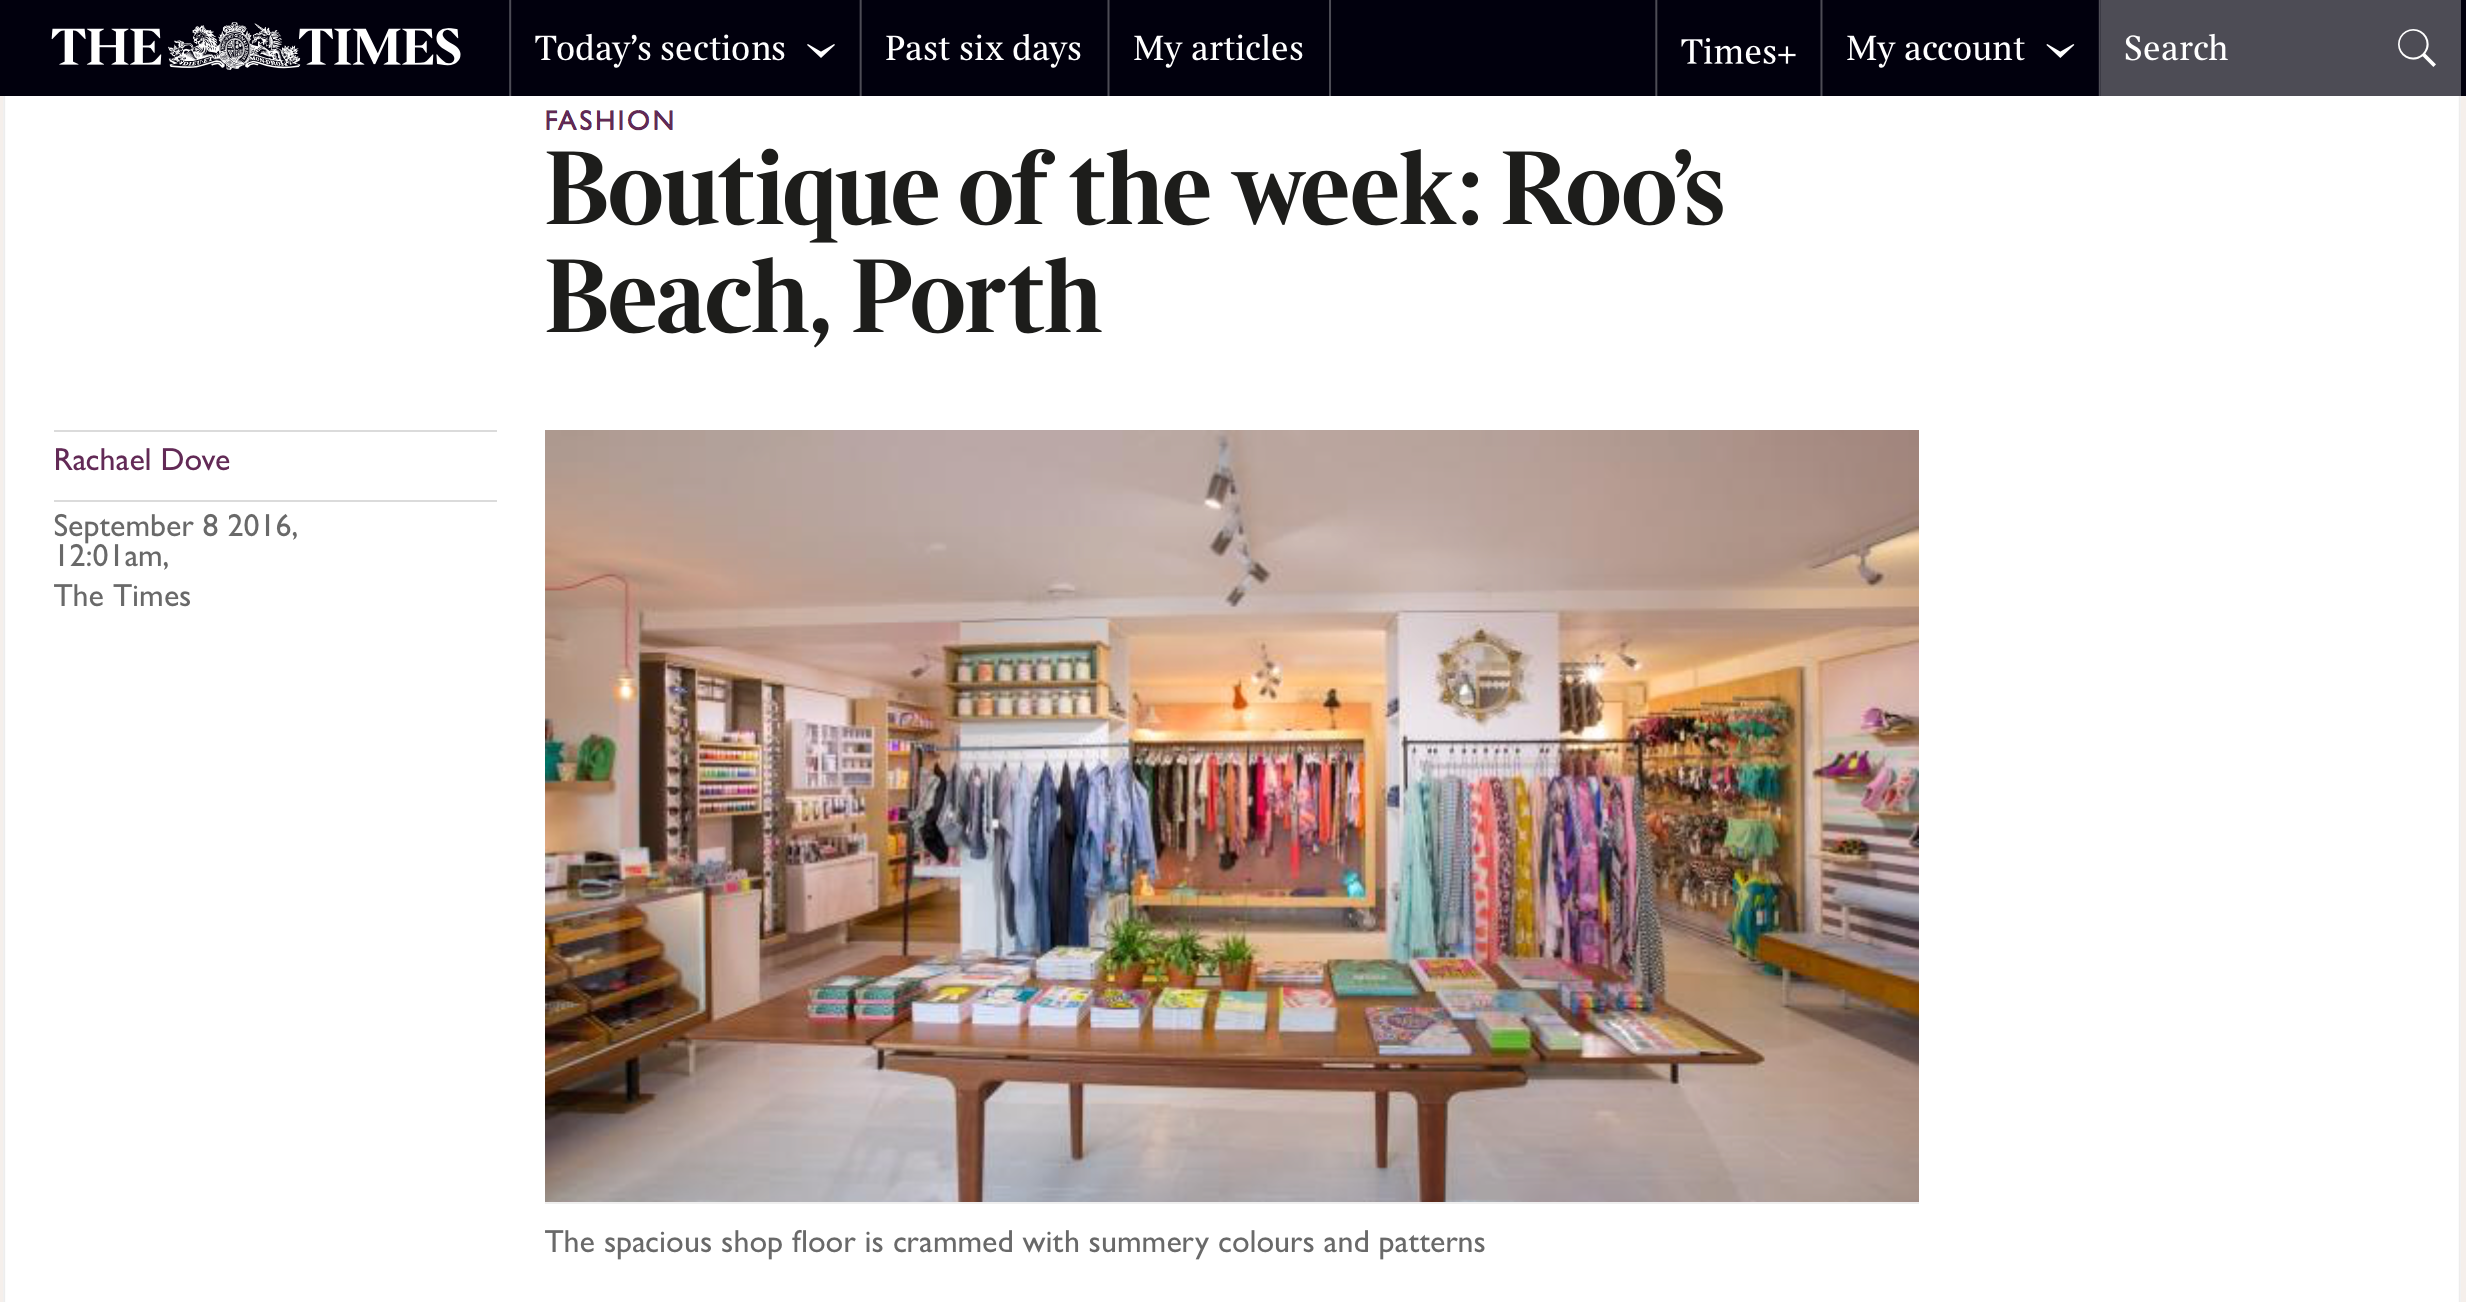 The Times Roos Beach Boutique of the Week